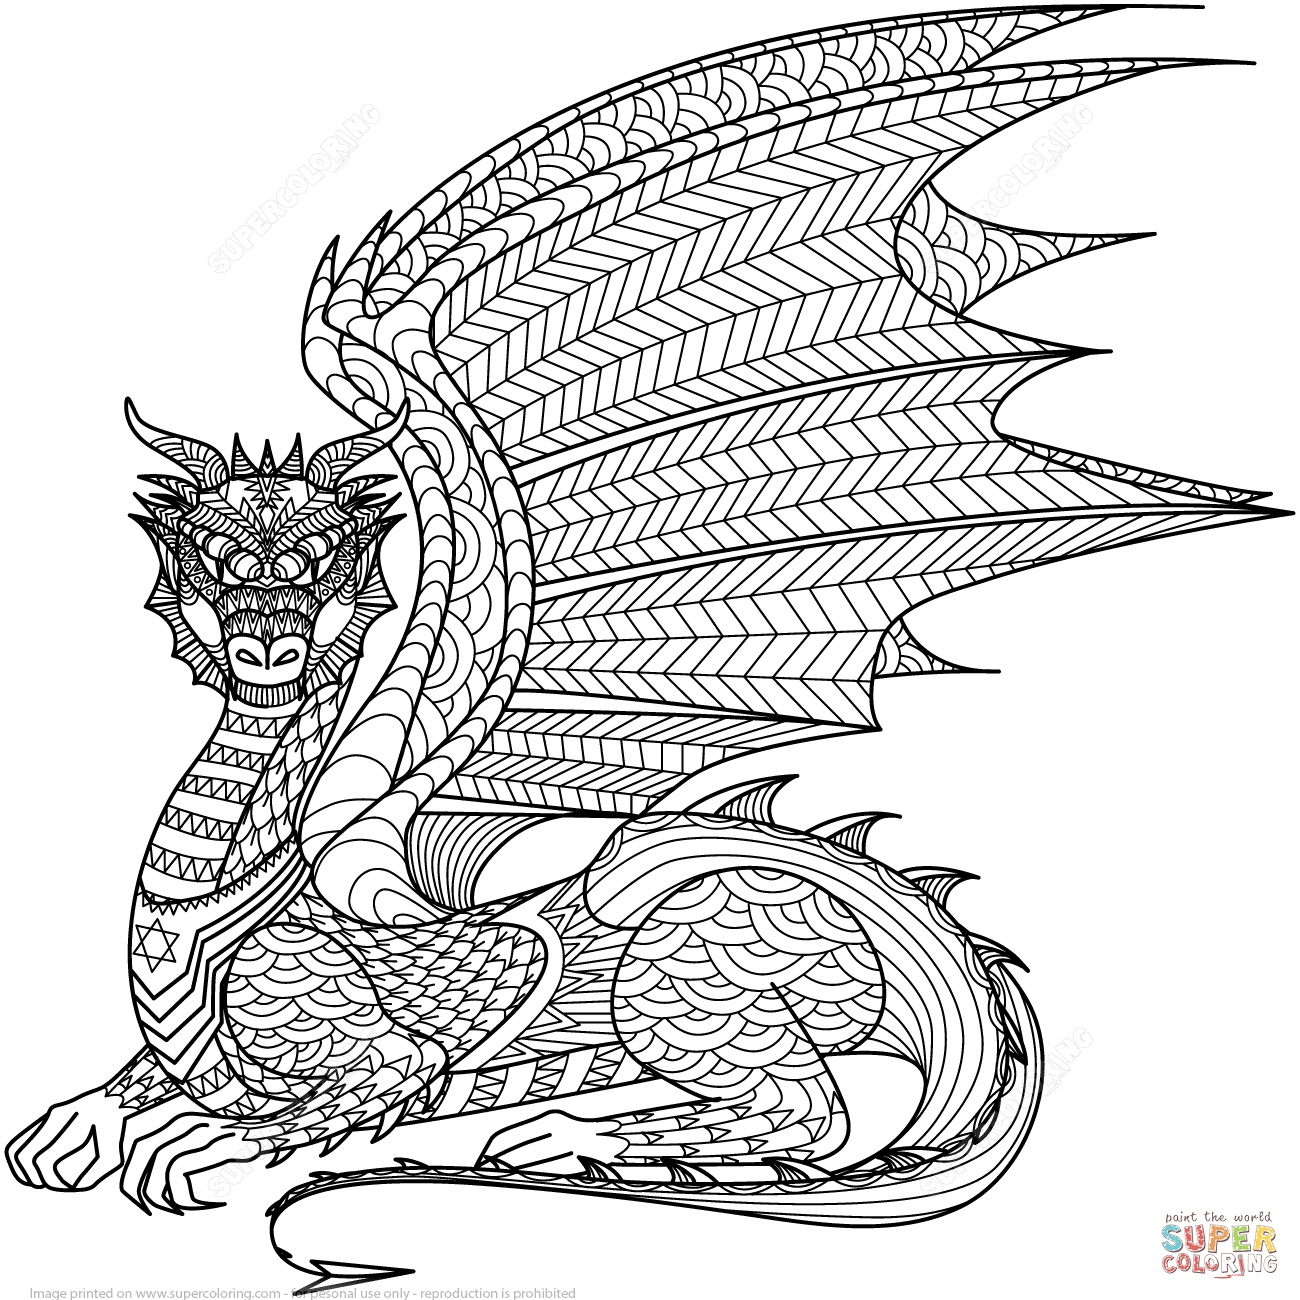 1300x1300 Coloring Pages Of Dragons New Dragon Zentangle Coloring Page